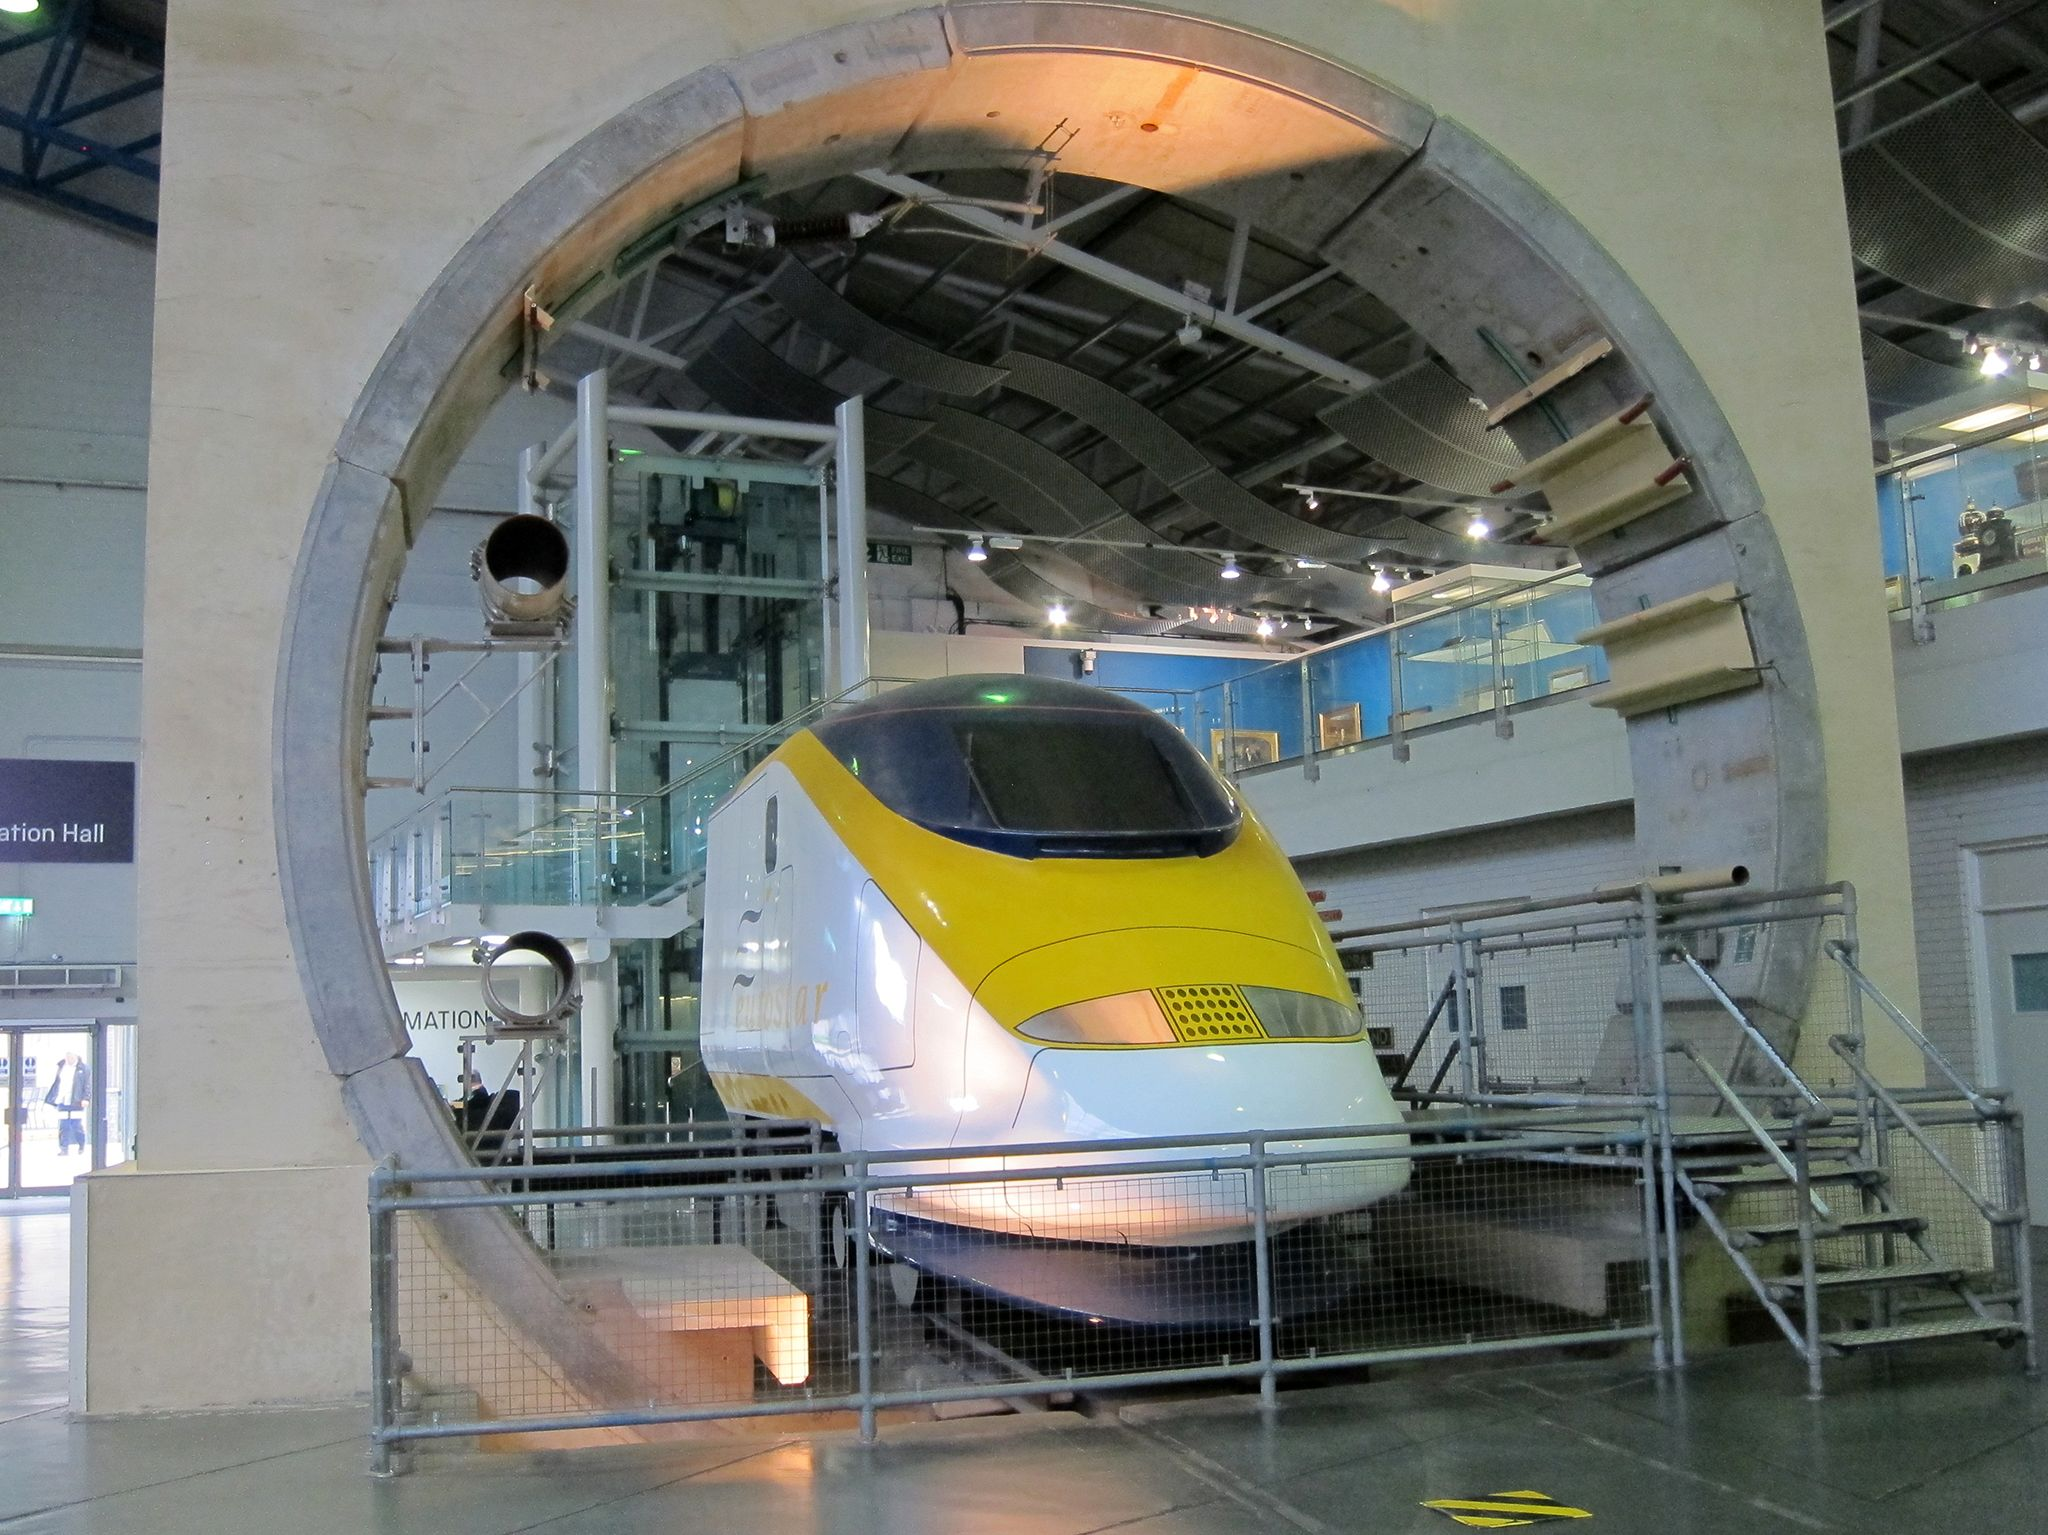 The front of the Eurostar train at National Railway Museum.  The Eurostar is featured on several... [Photo of the day - ژوئن 2019]